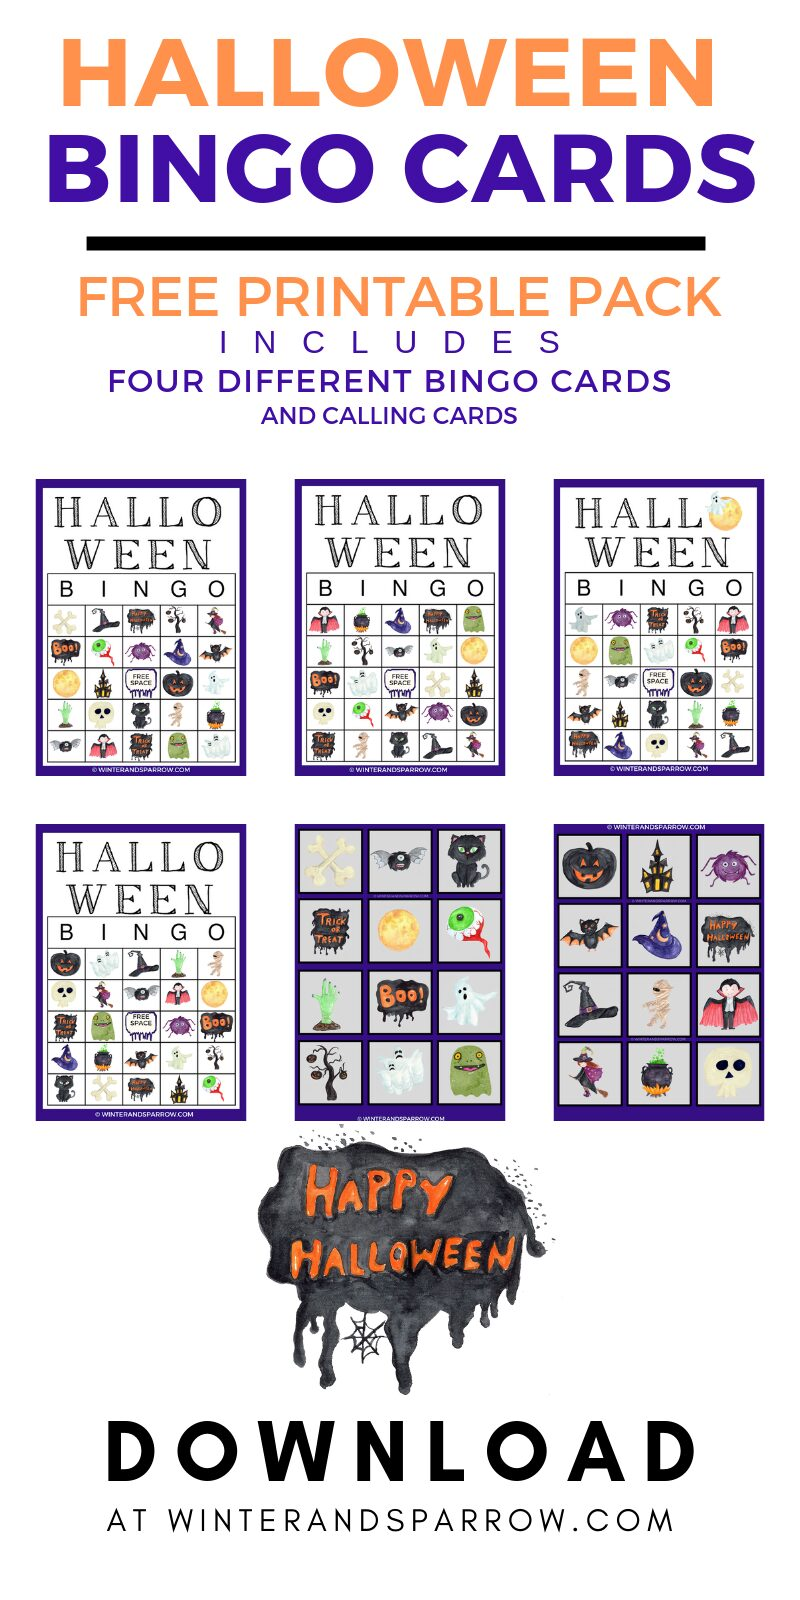 photo relating to Printable Bingo Calling Cards titled Halloween Printable BINGO Playing cards: Features 4 Substitute